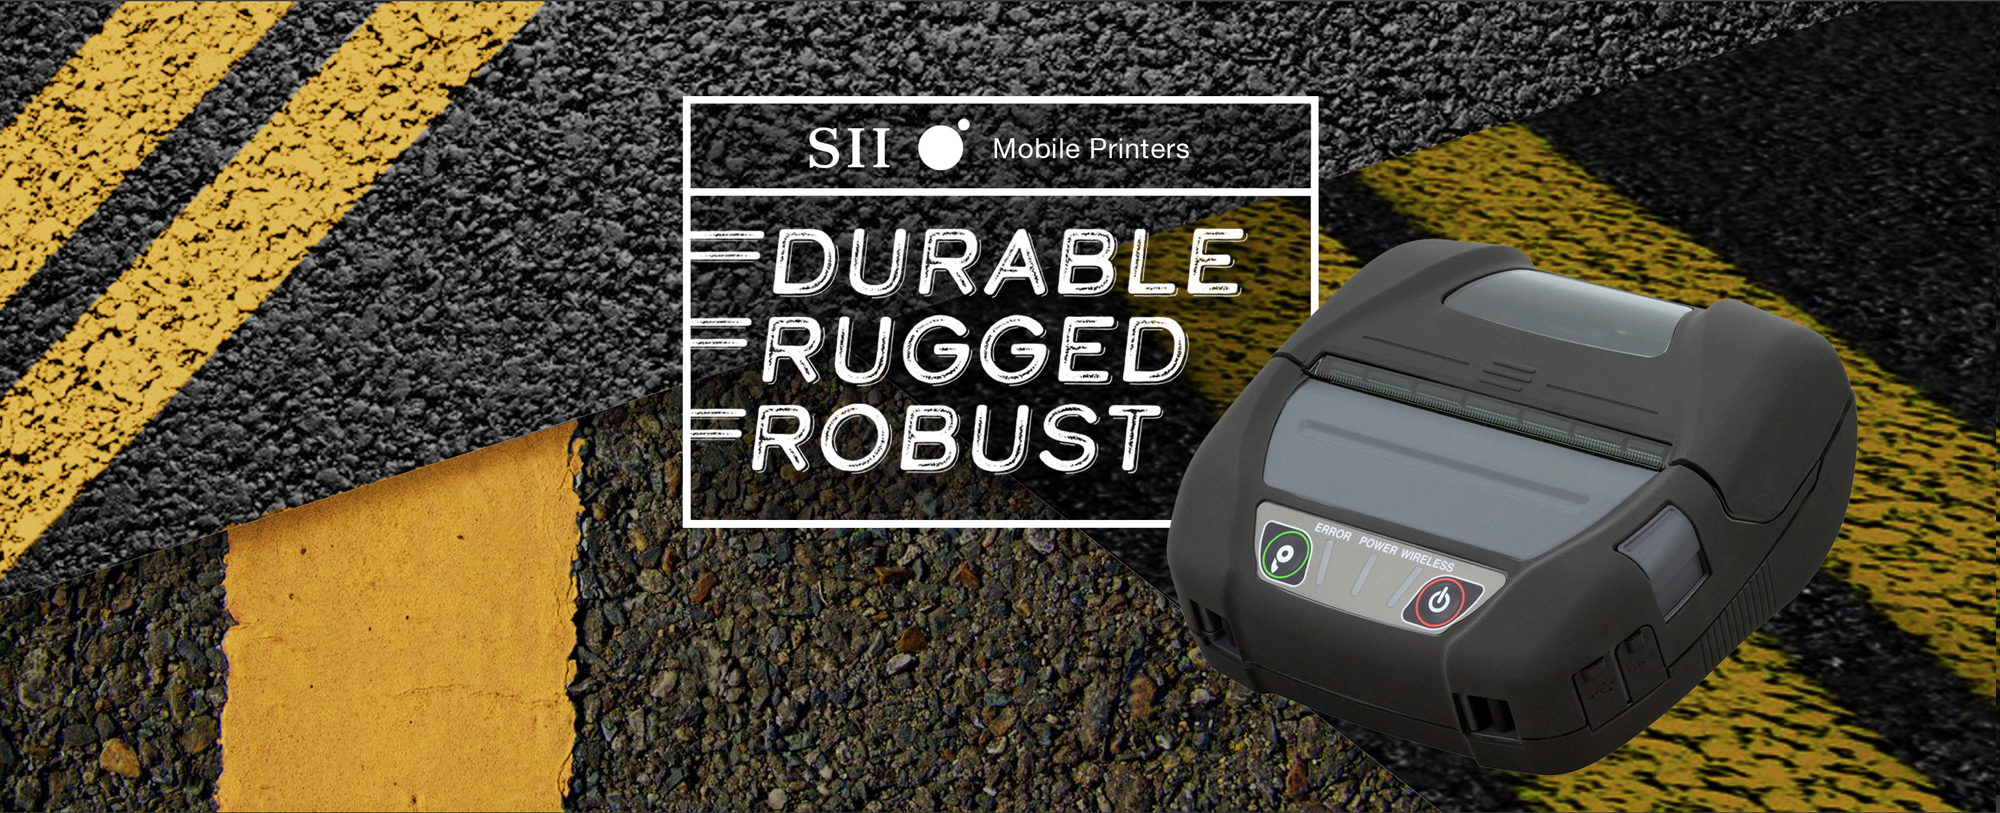 SII Mobile Printers - Durable, Rugged, Robust